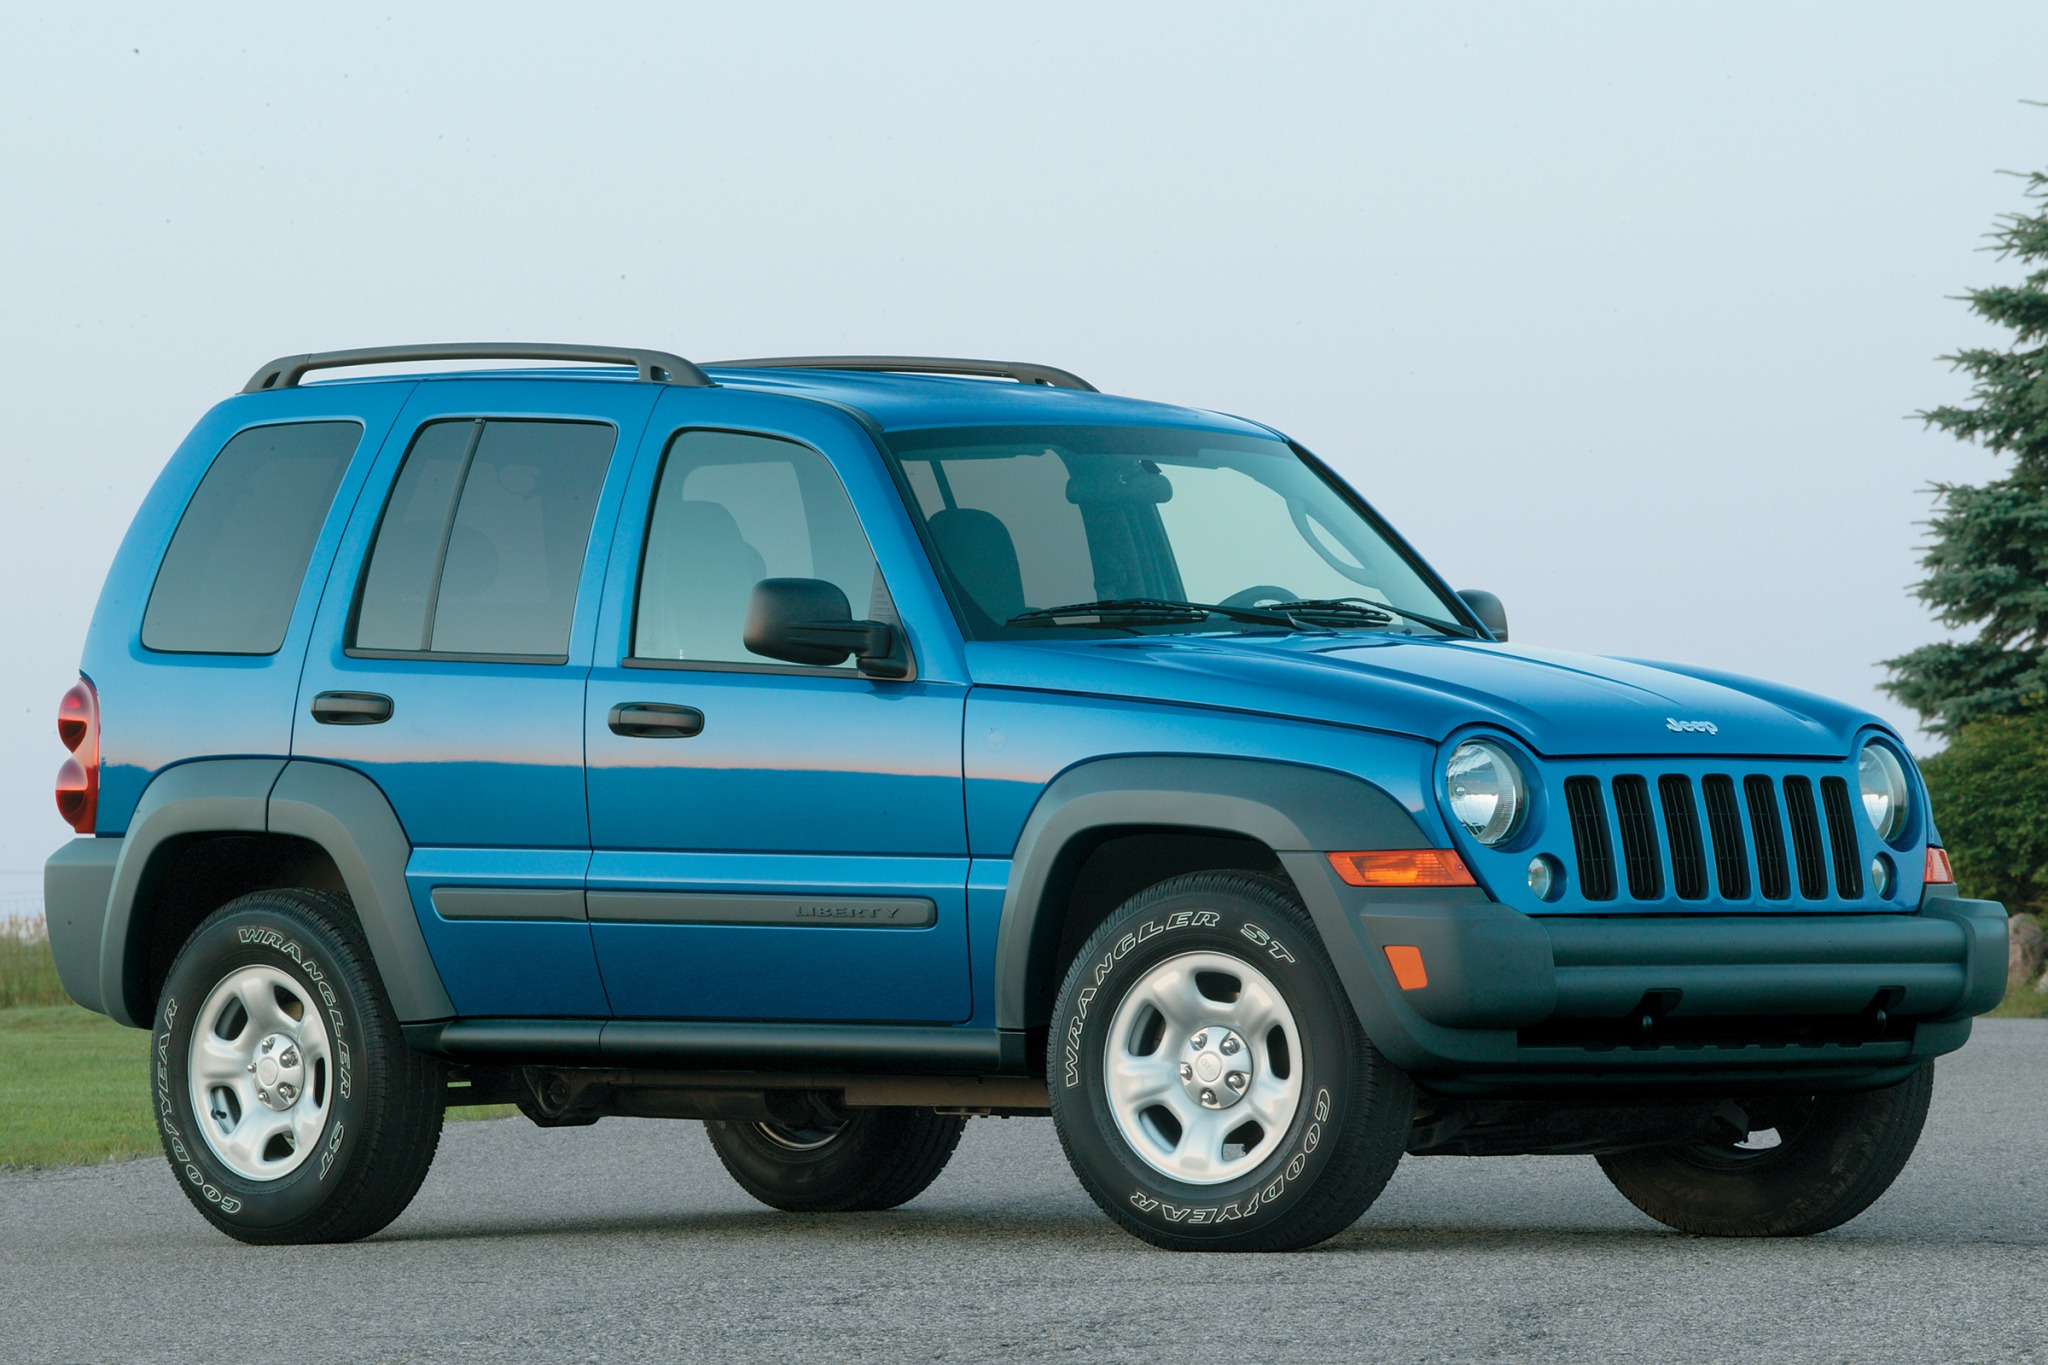 2007 Jeep Liberty Limited interior #1